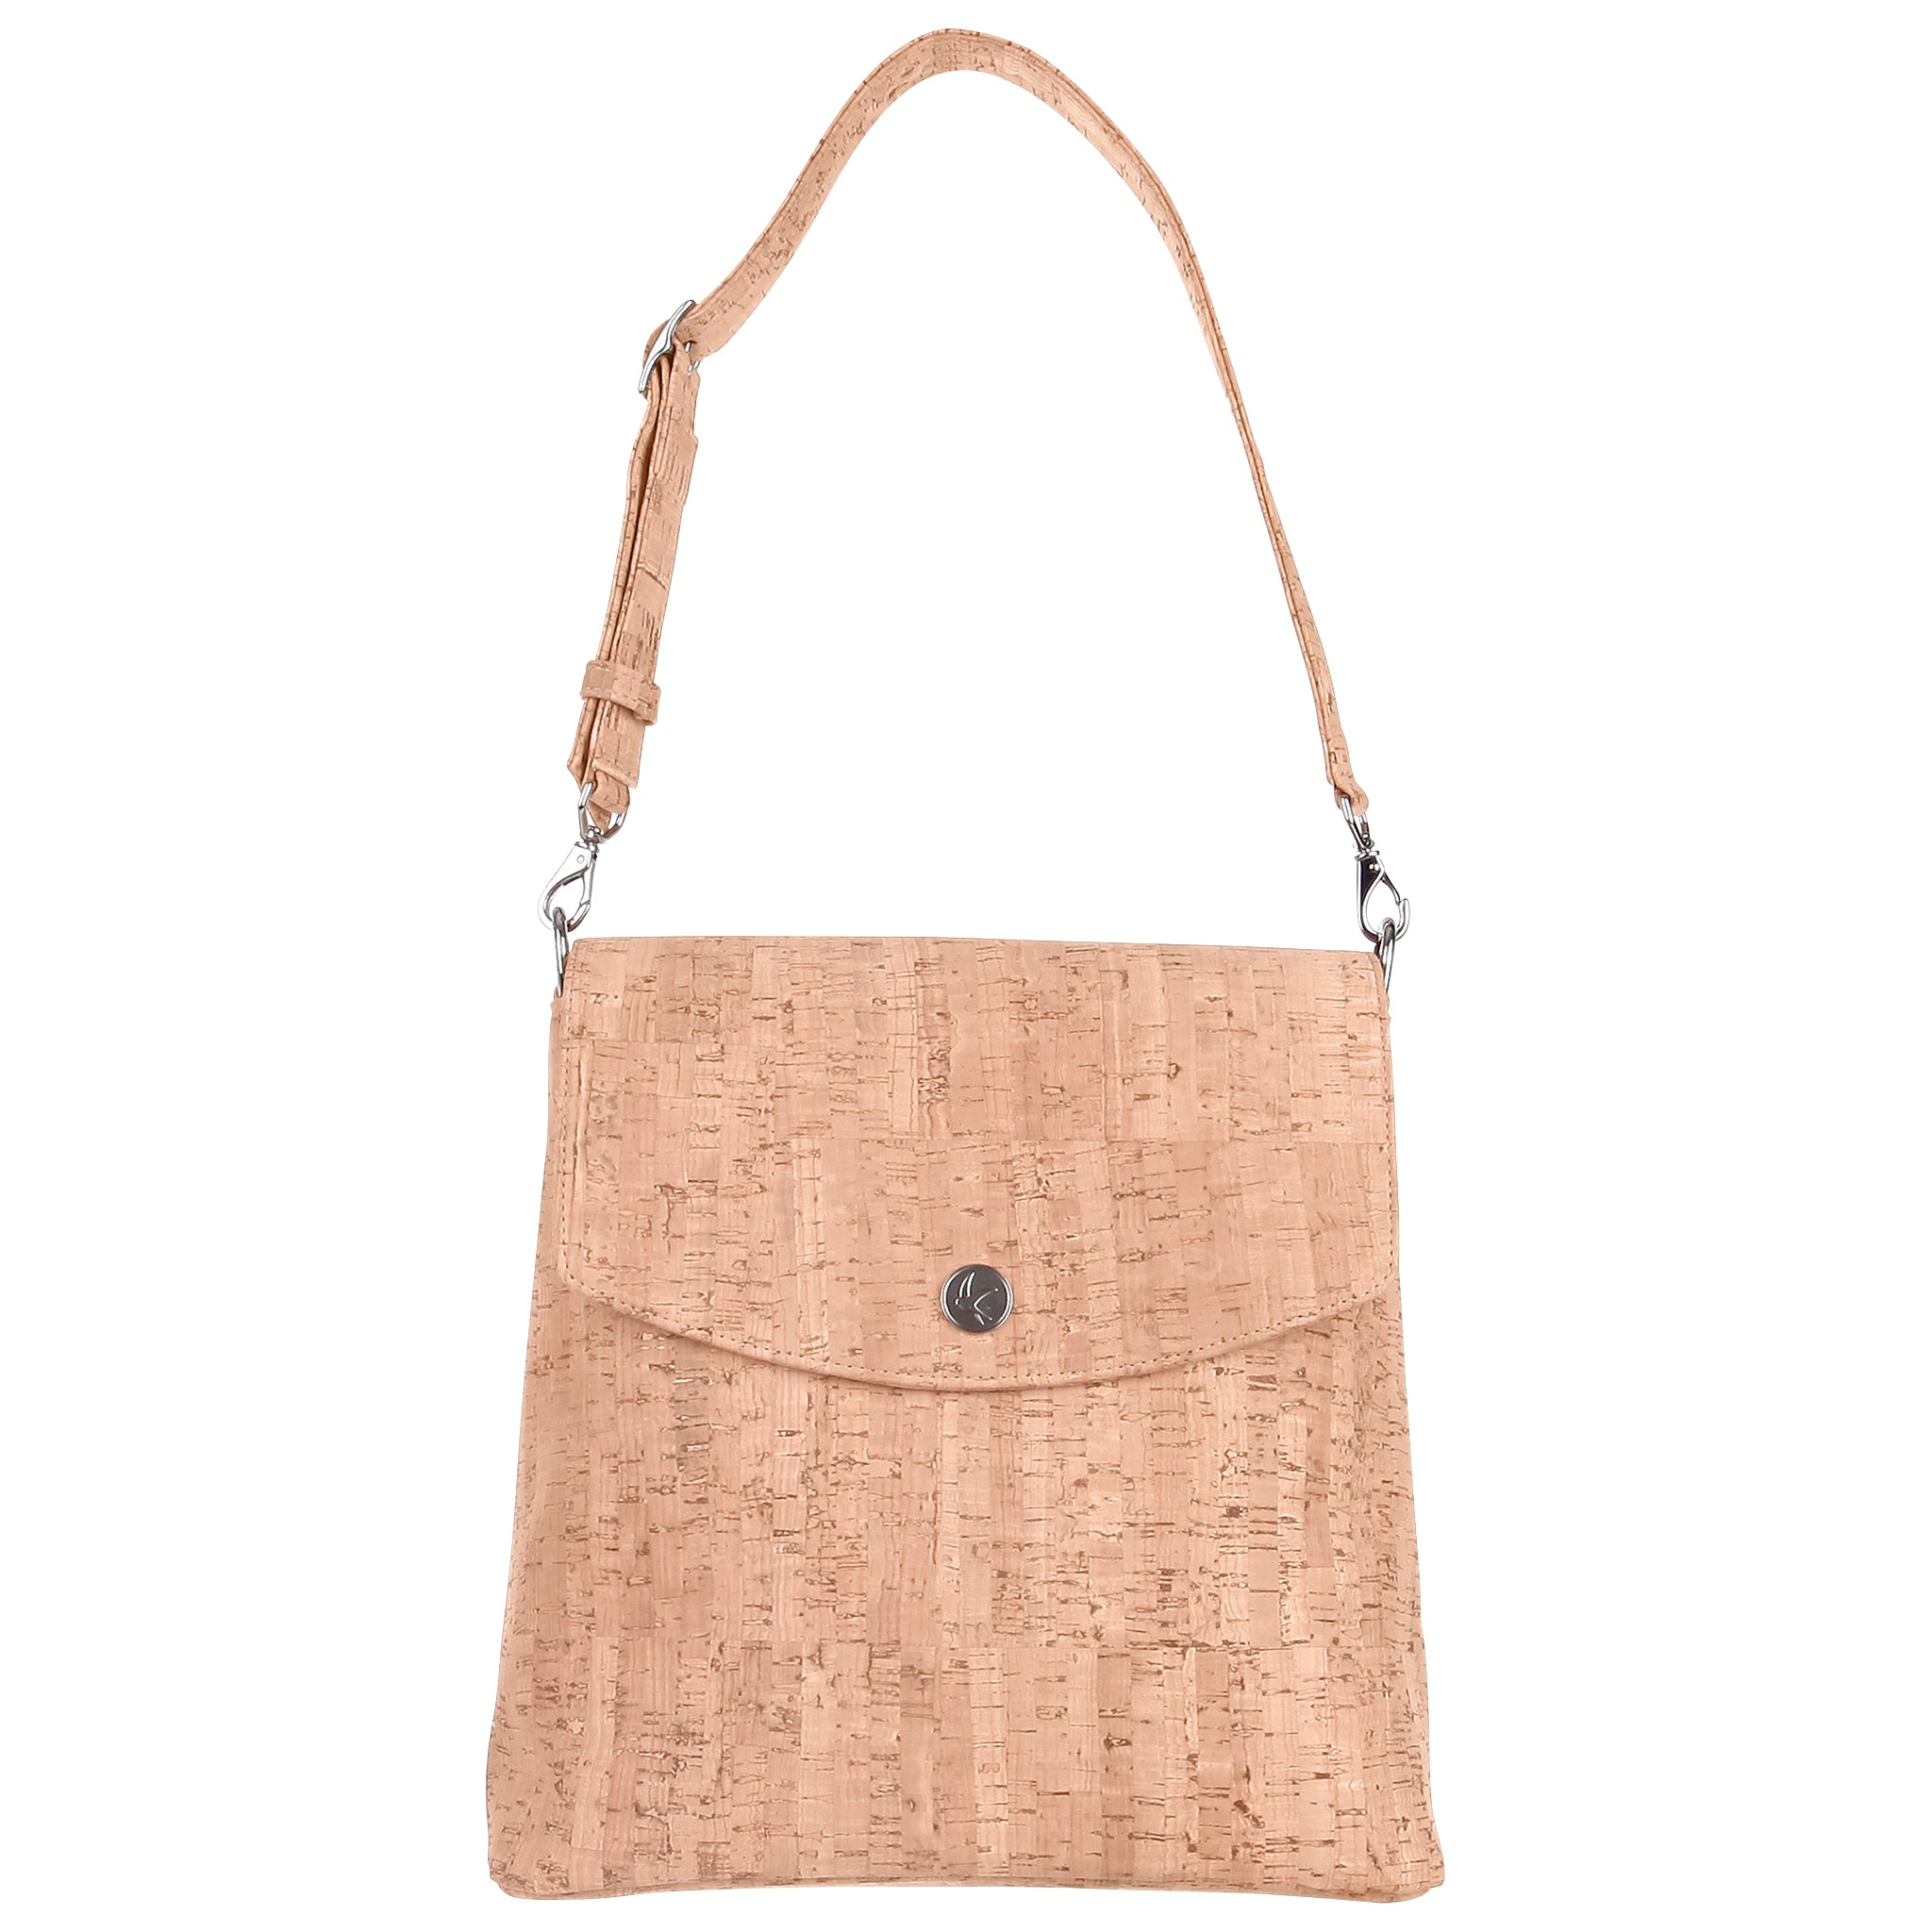 A backpack purse made with cork.